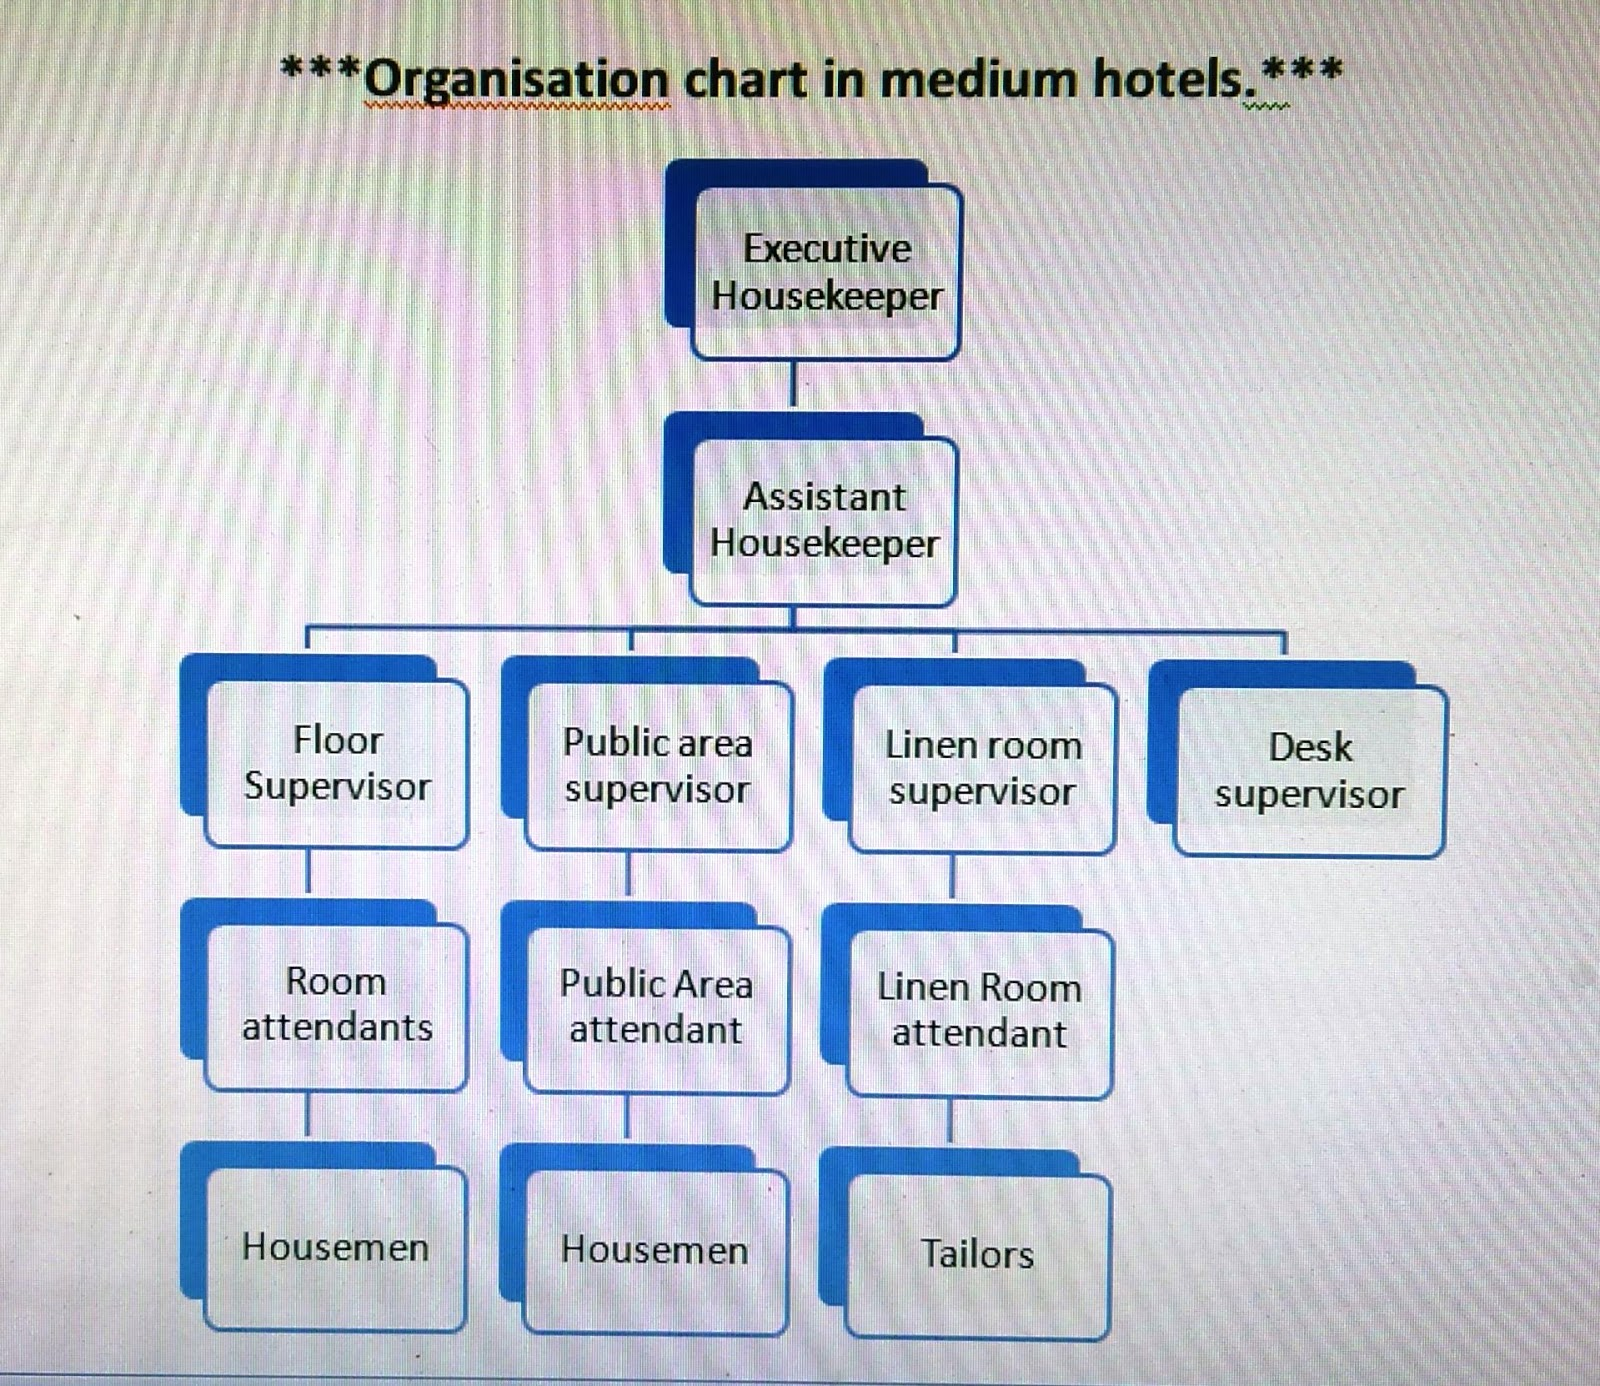 housekeeping deprtment chart picturte in hotl: Hkfirstsem organization chart of housekeeping department